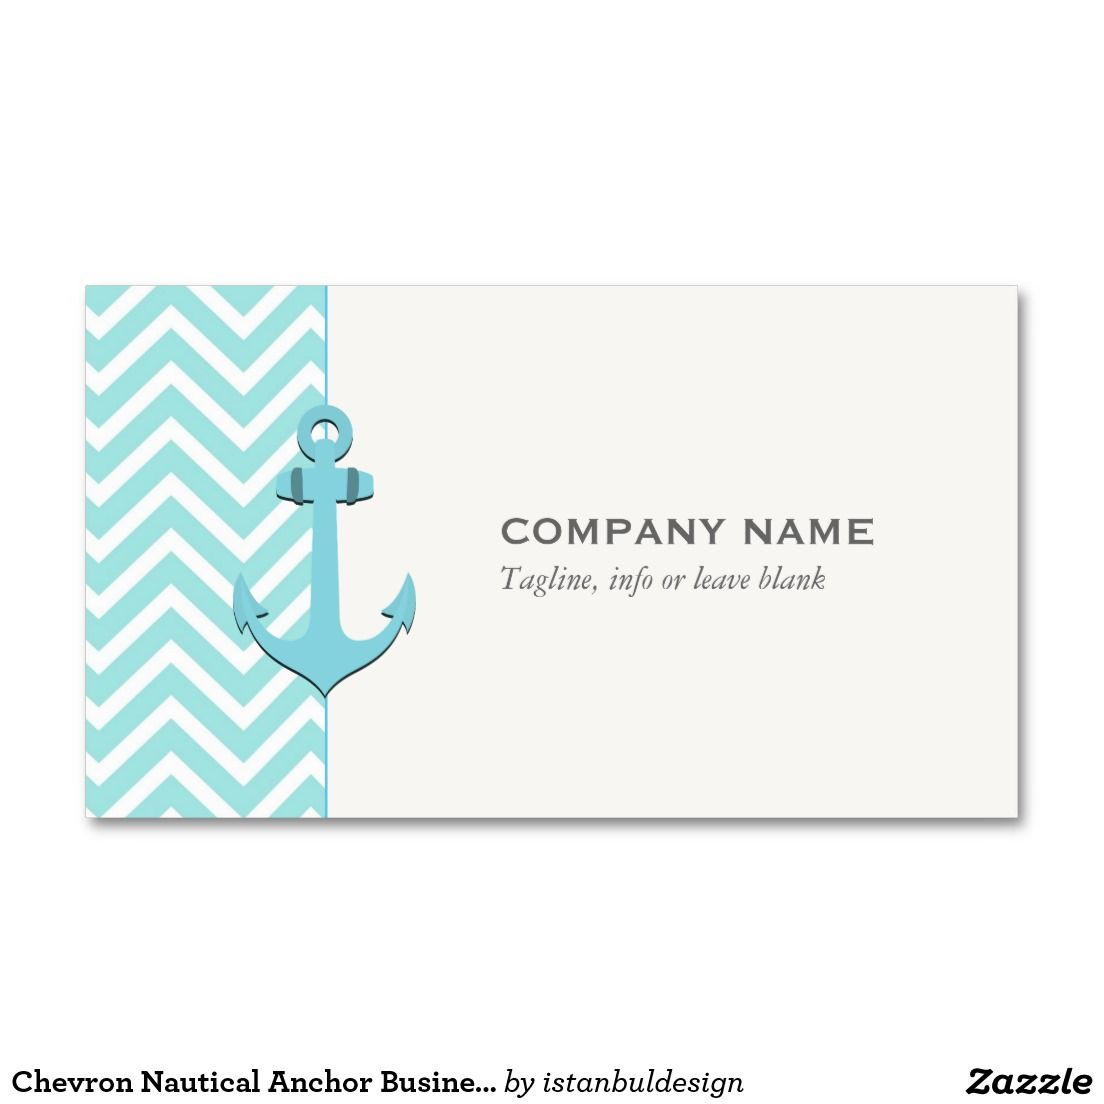 Chevron Nautical Anchor Business Card | Chevron, Business and ...